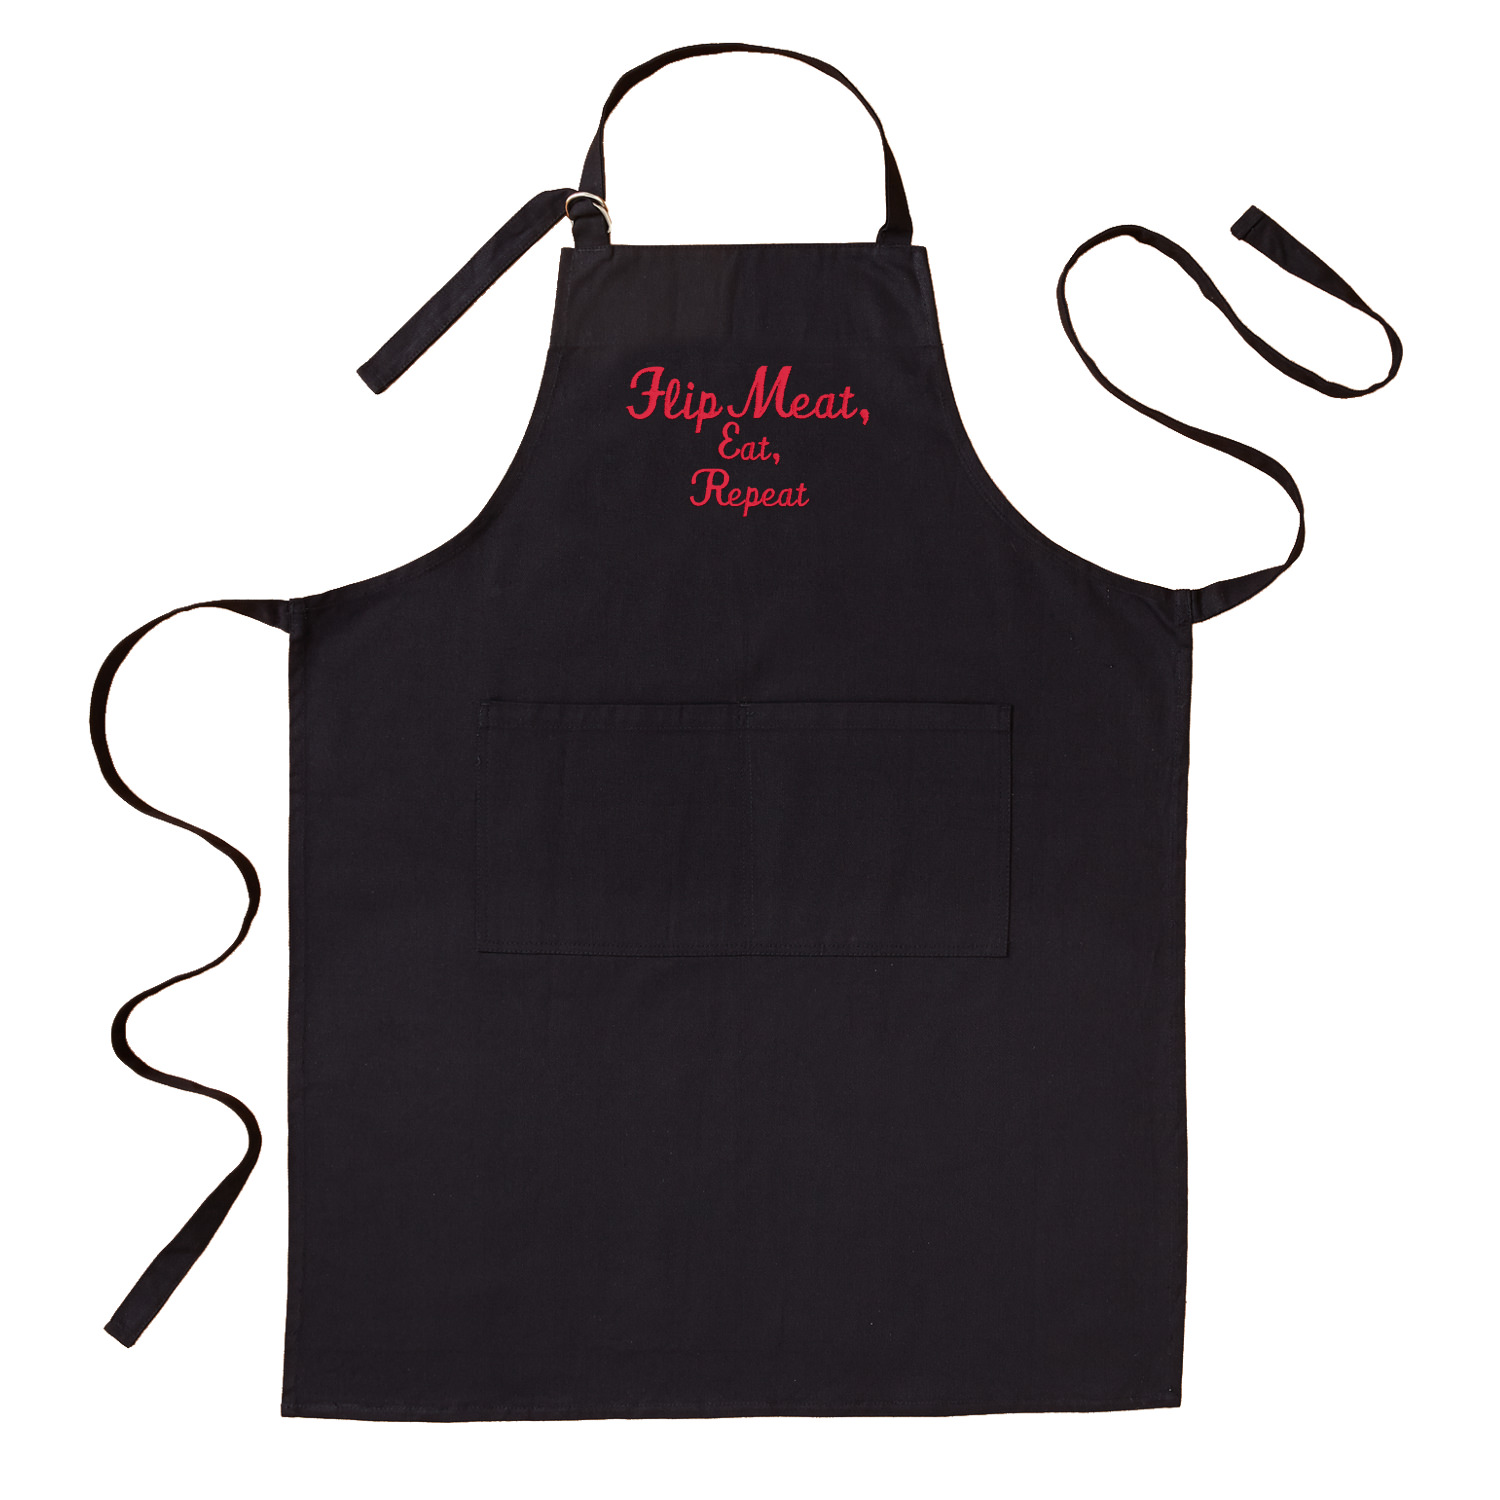 Personalized Family Fun Embroidered Grill Apron - Available in 2 Colors and 2 Fonts